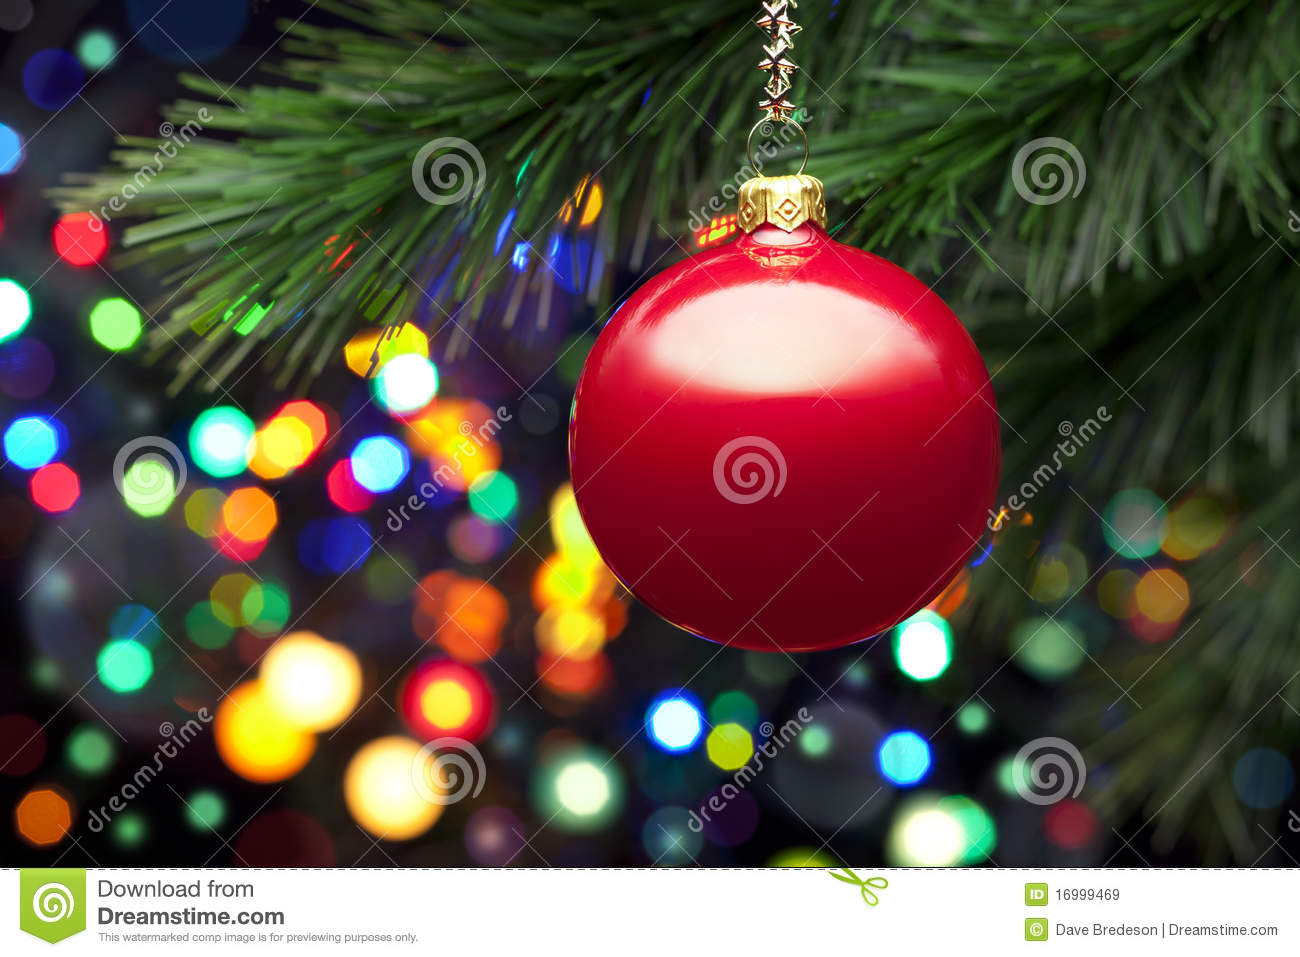 Download Christmas Tree Lights And Ornament Stock Image - Image of festive, green: 16999469